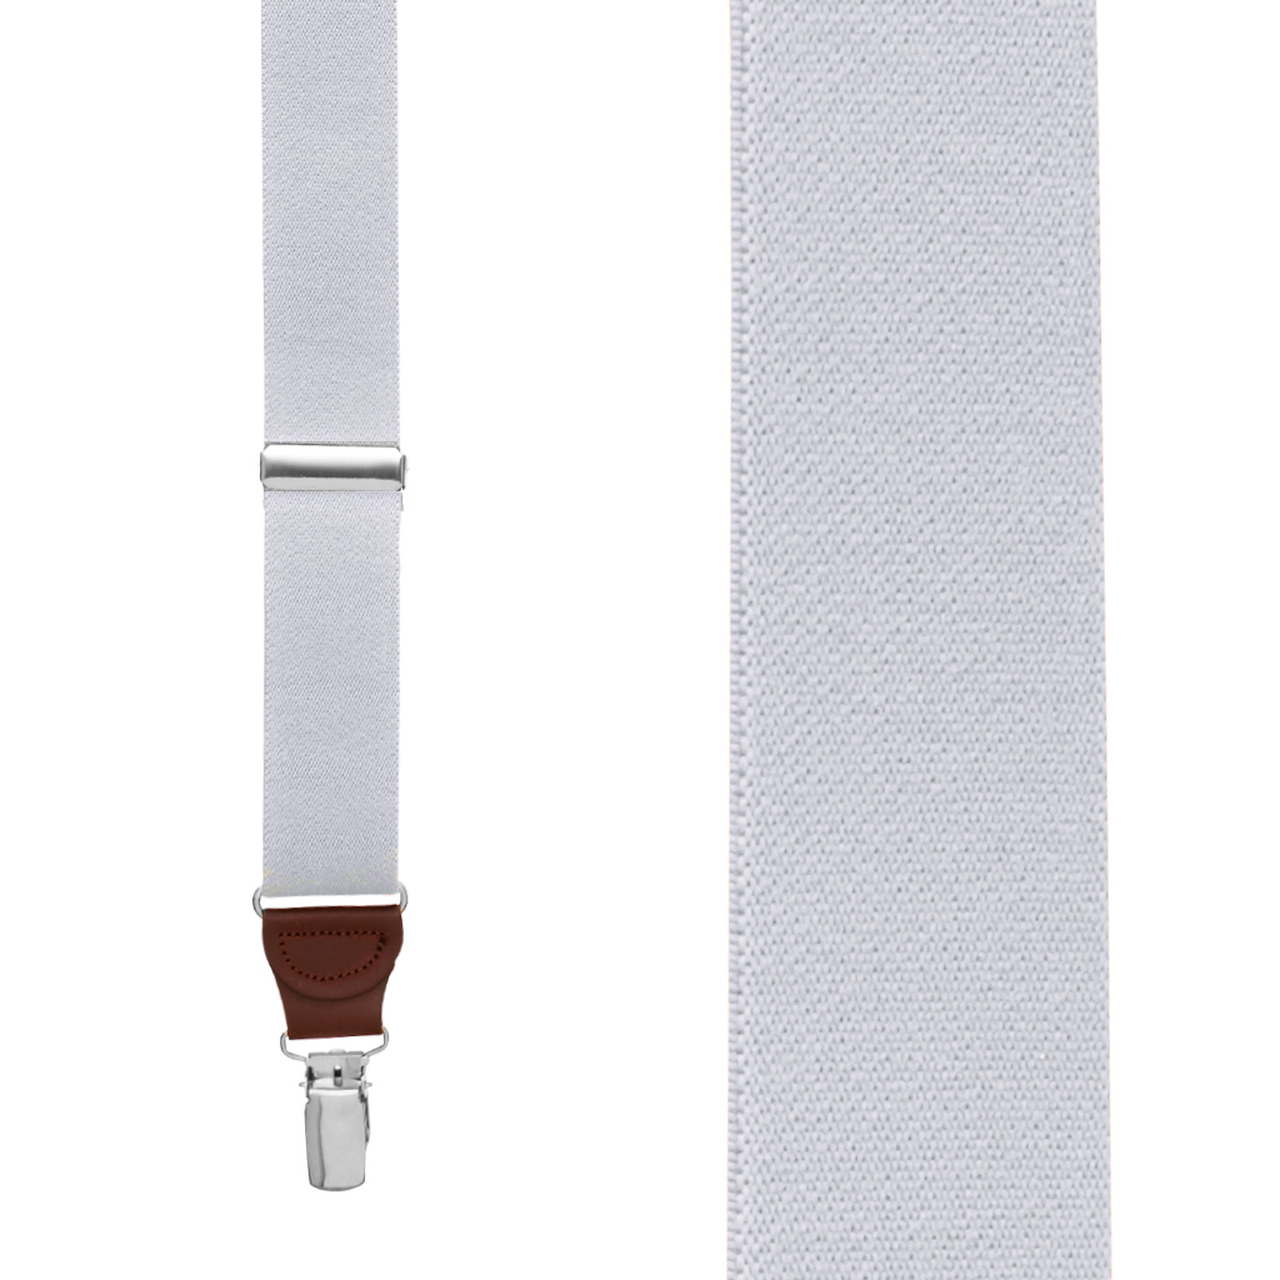 da45c4e708c GREY Suspenders With Brown Leather - 1.25 Inch Y-Back Clip ...